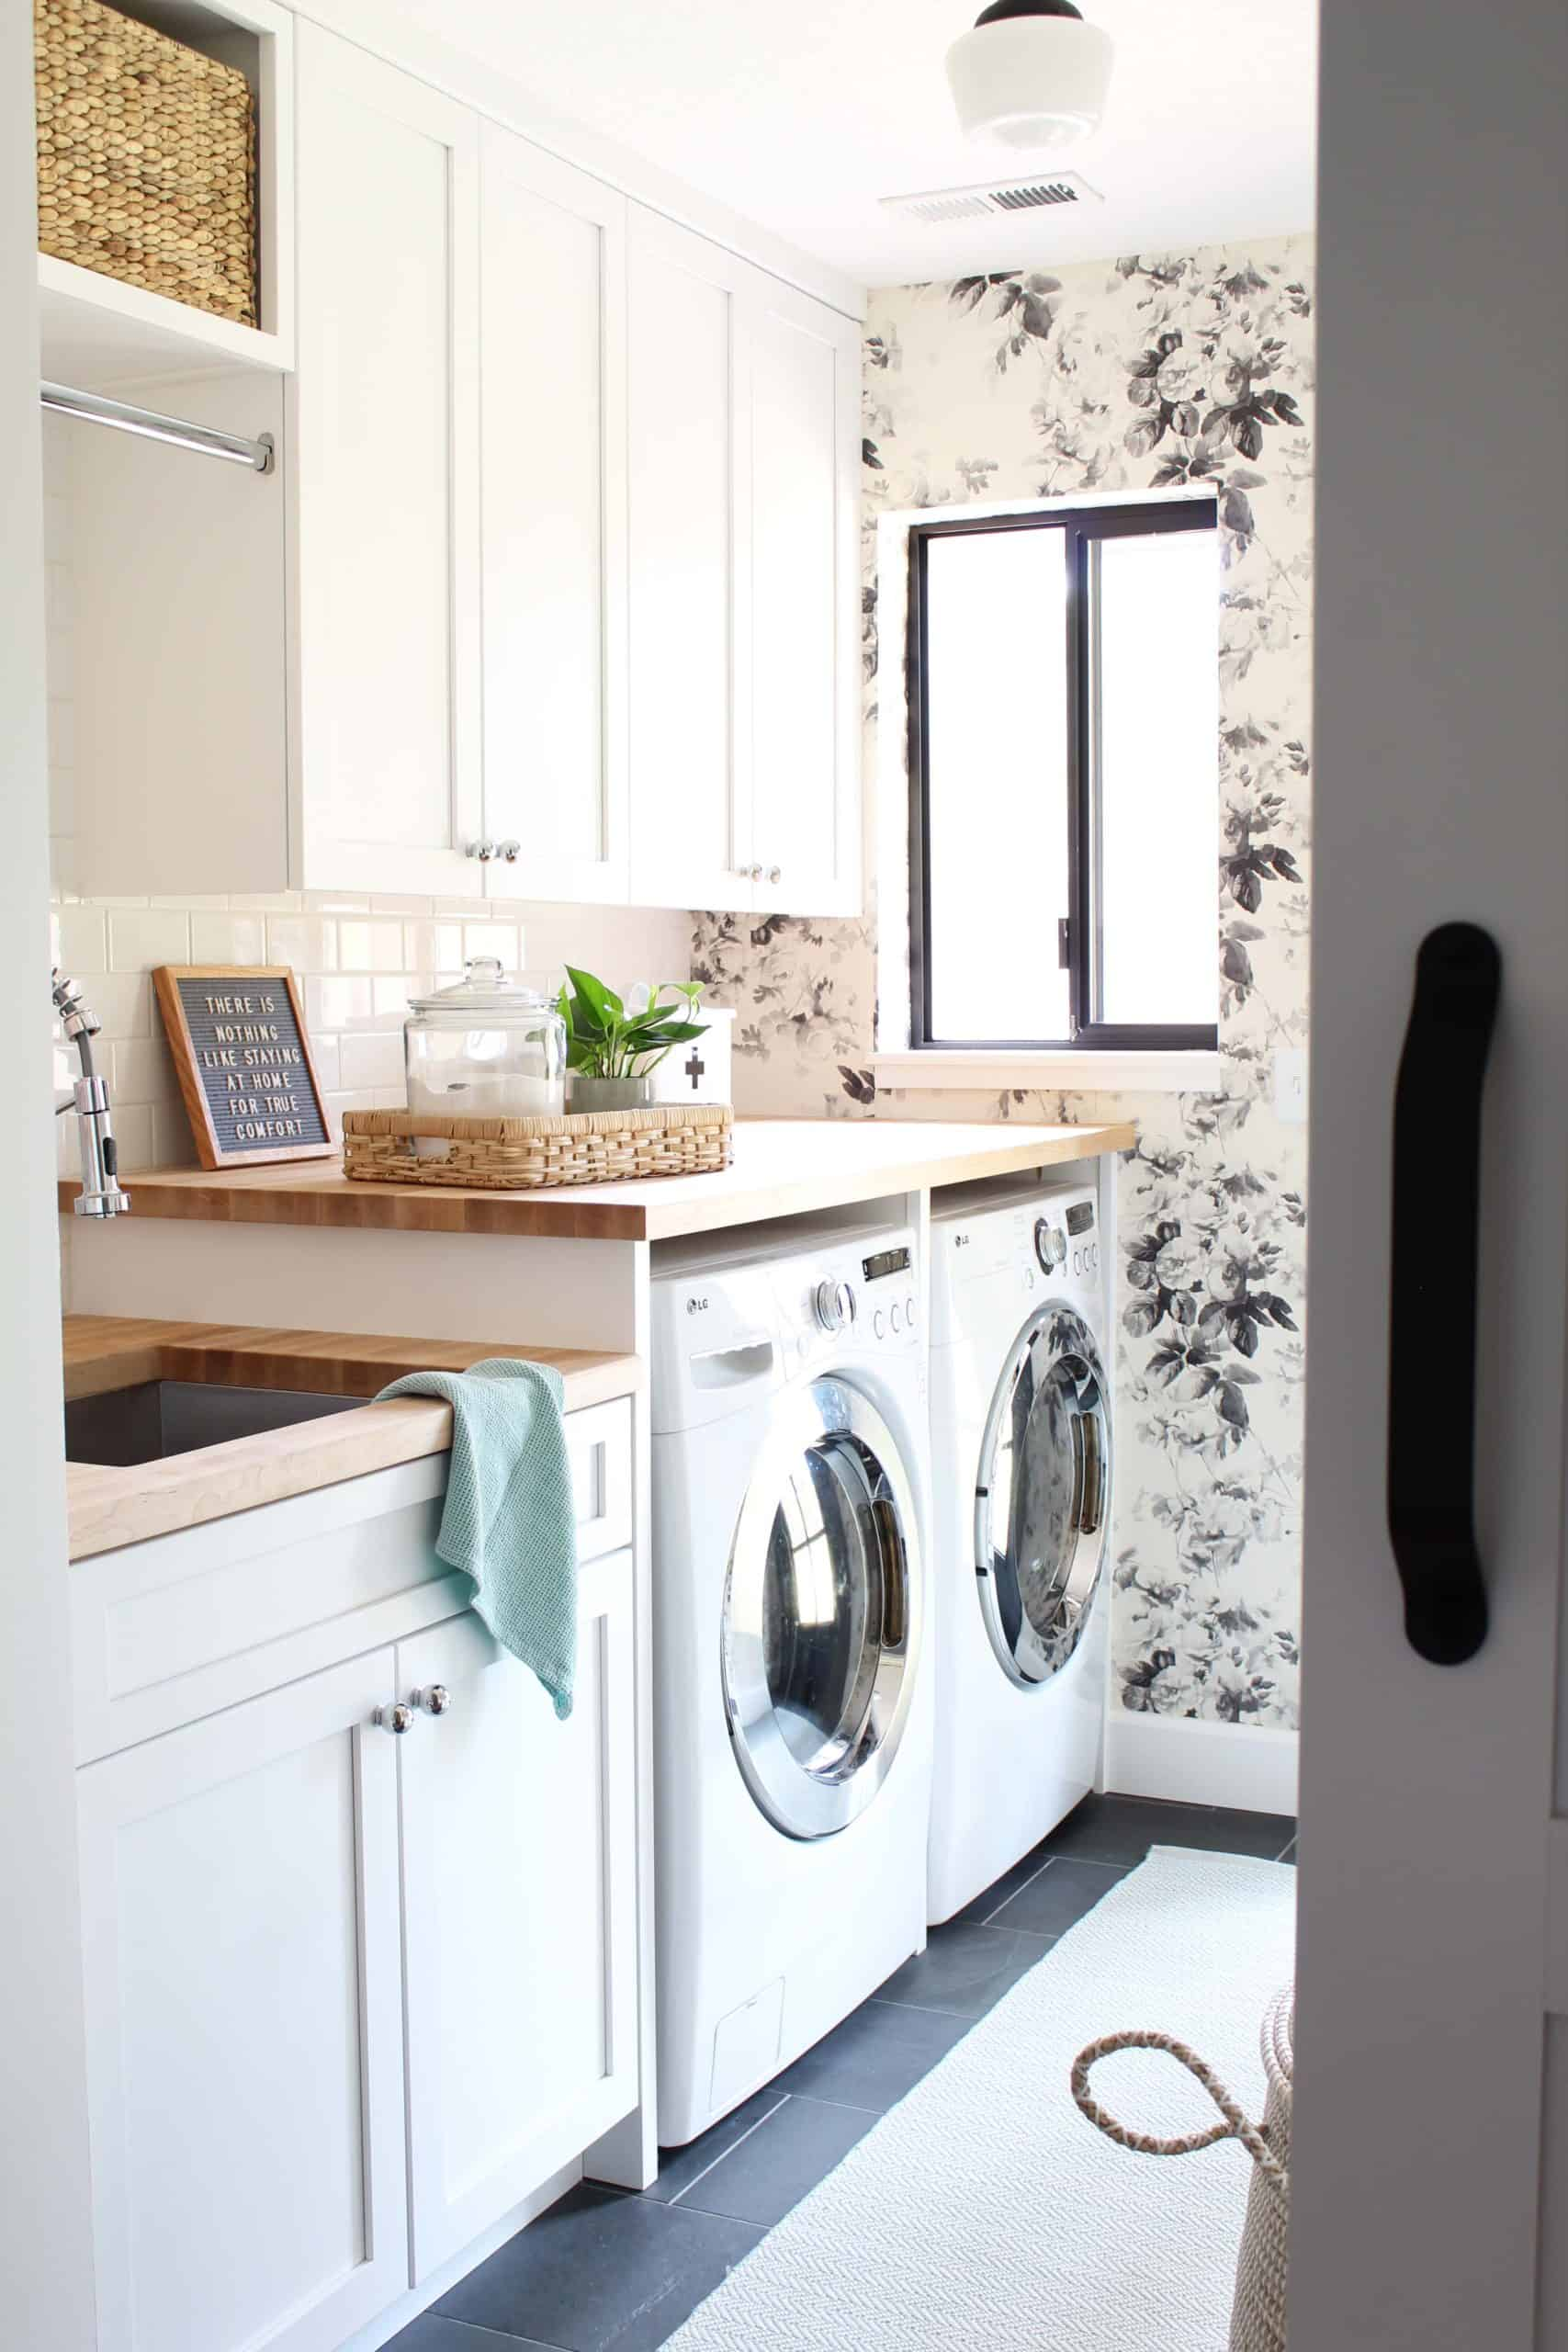 house of hackney smoky rose wallpaper, laundry room with butcher block counter tops, laundry room with slate tile floor, laundry room with two different height countertops, laundry room with white shaker cabinets, laundry room with white barn door